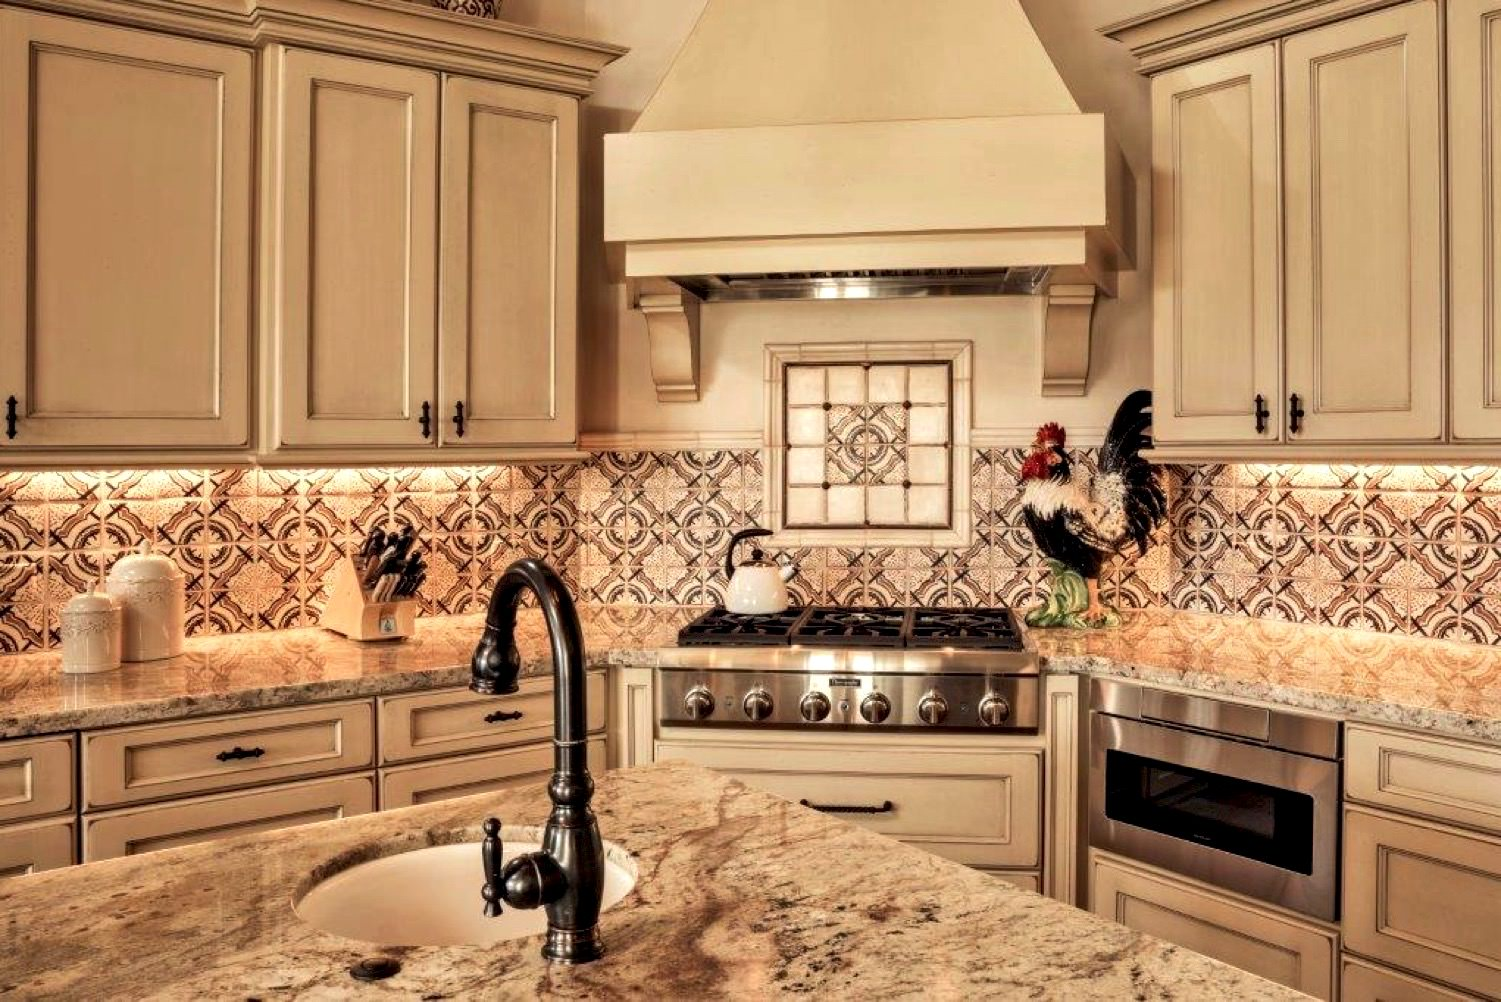 Pasadera Kitchen, design by Gardner & Associates